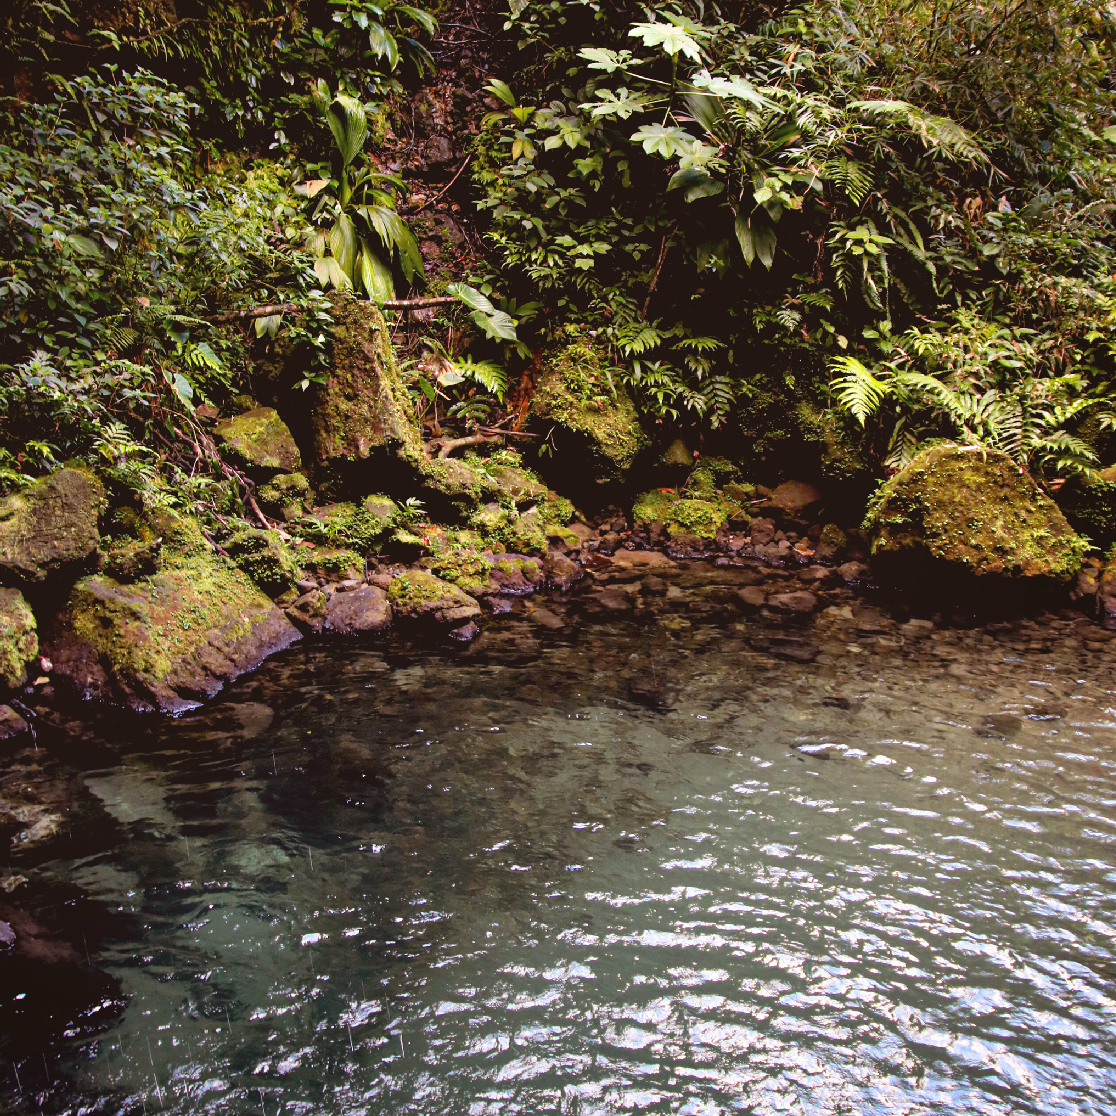 Emerald Pool, Dominique